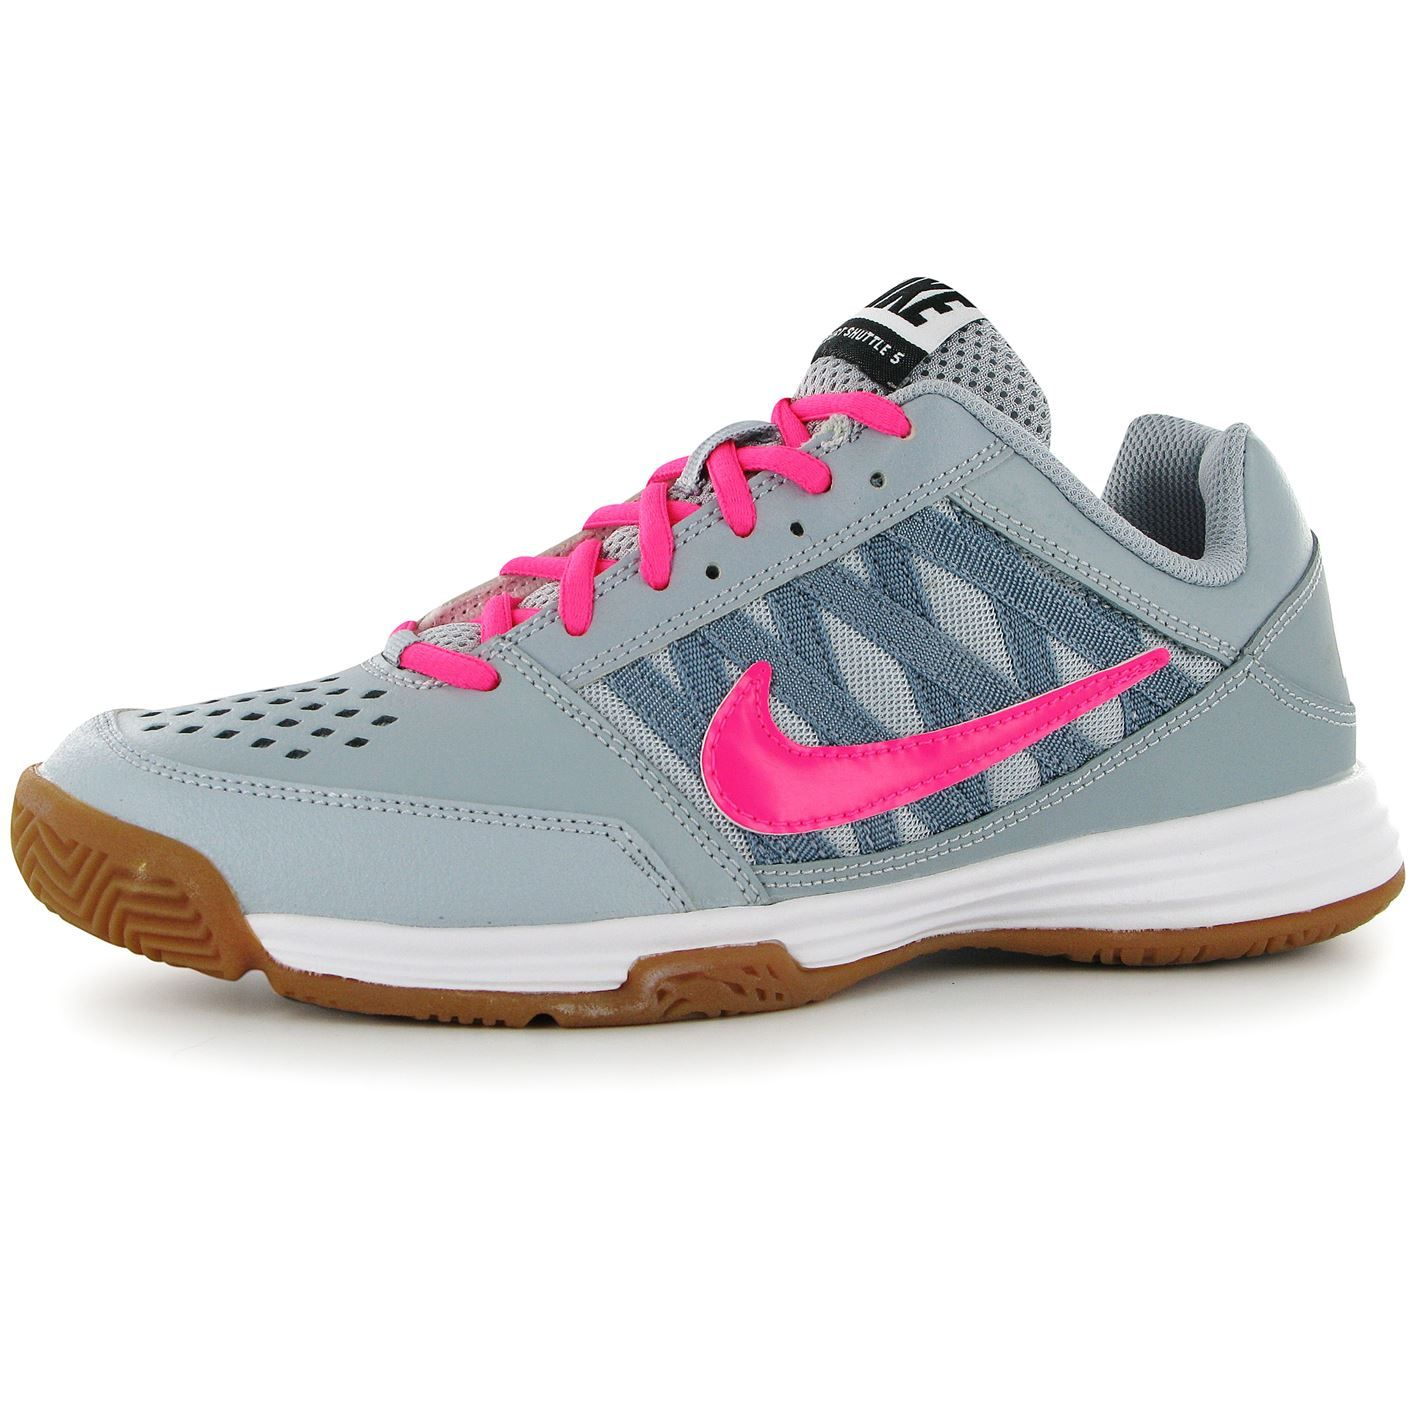 Nike | Nike Court Shuttle V Ladies Badminton Shoes | Badminton Shoes